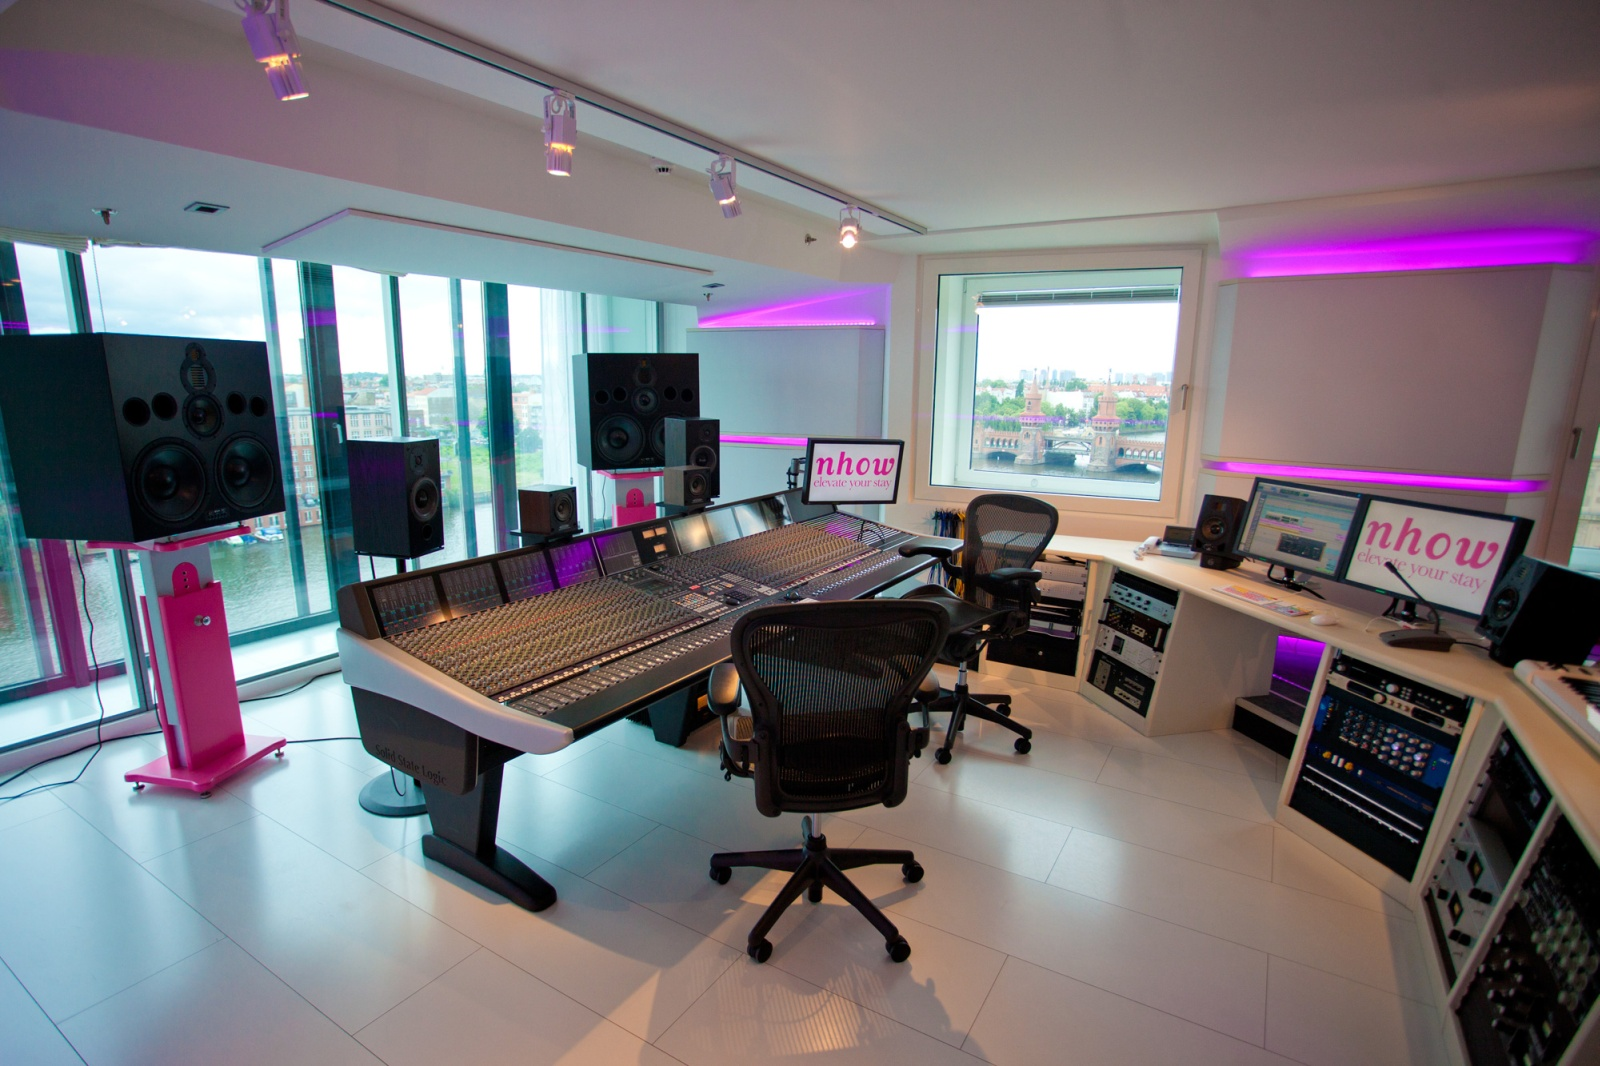 Nhow europe s first music hotel for Music studio flooring